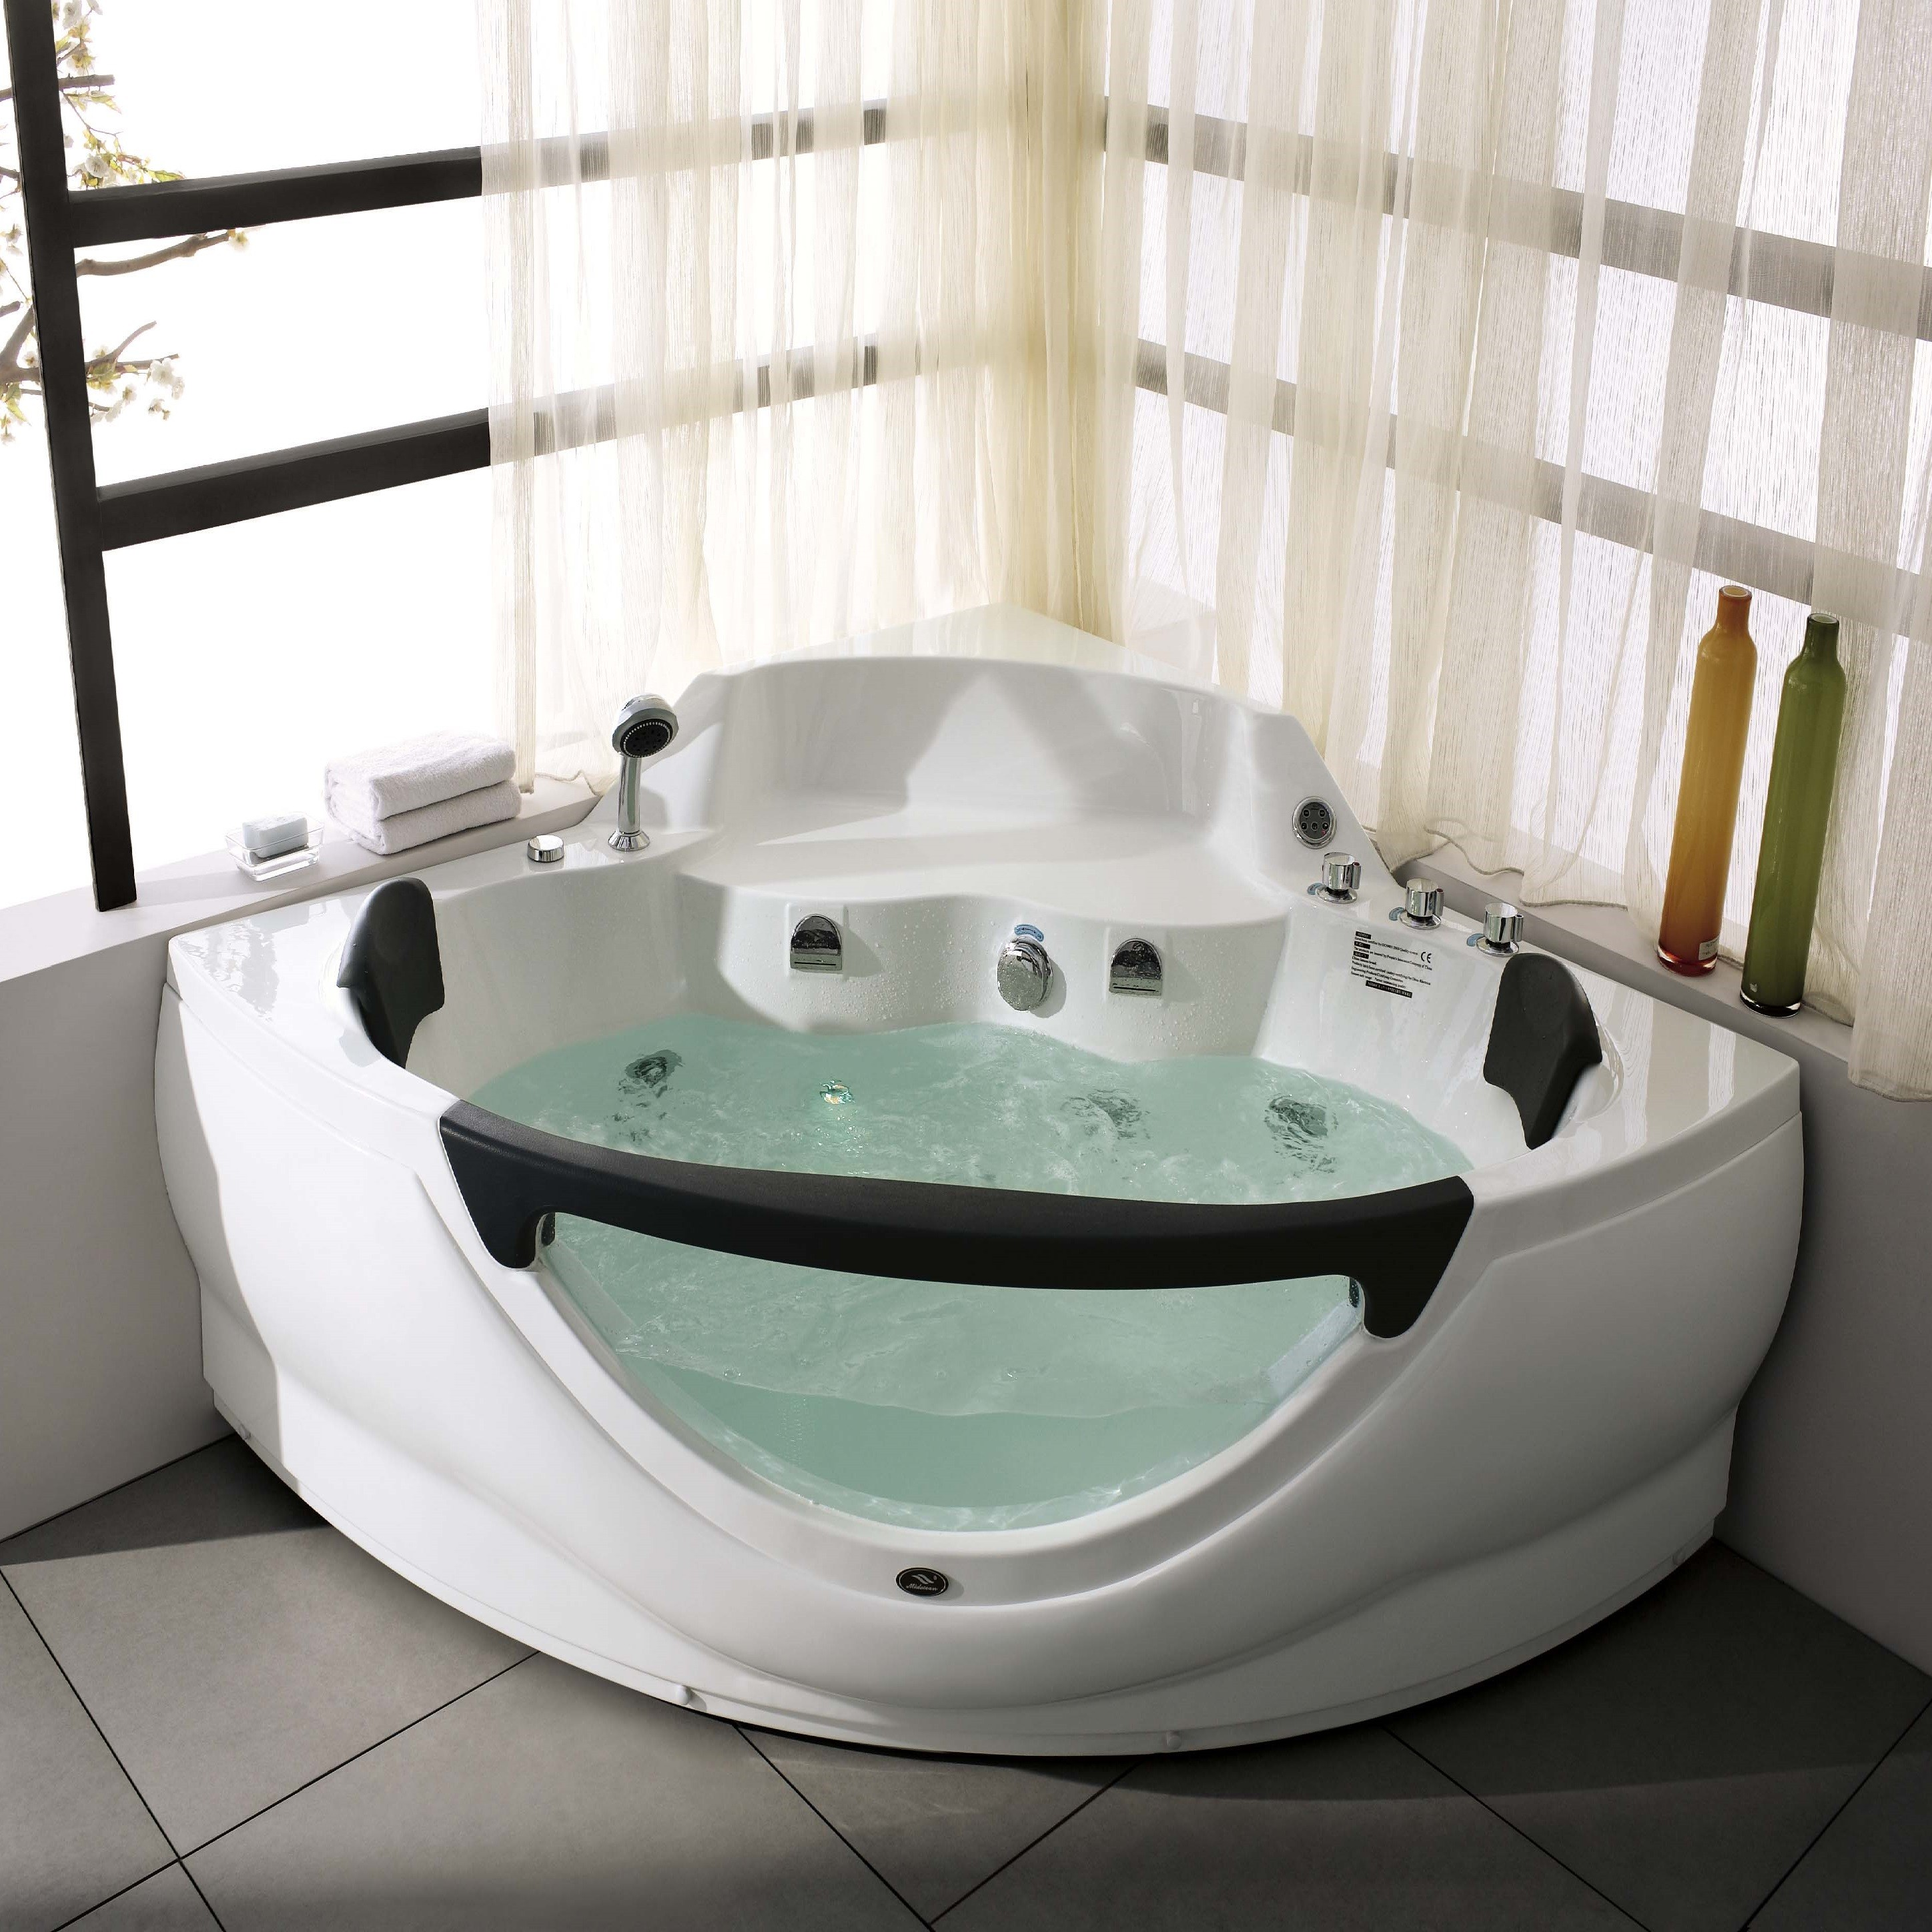 Cozumel Luxury Whirlpool Tub